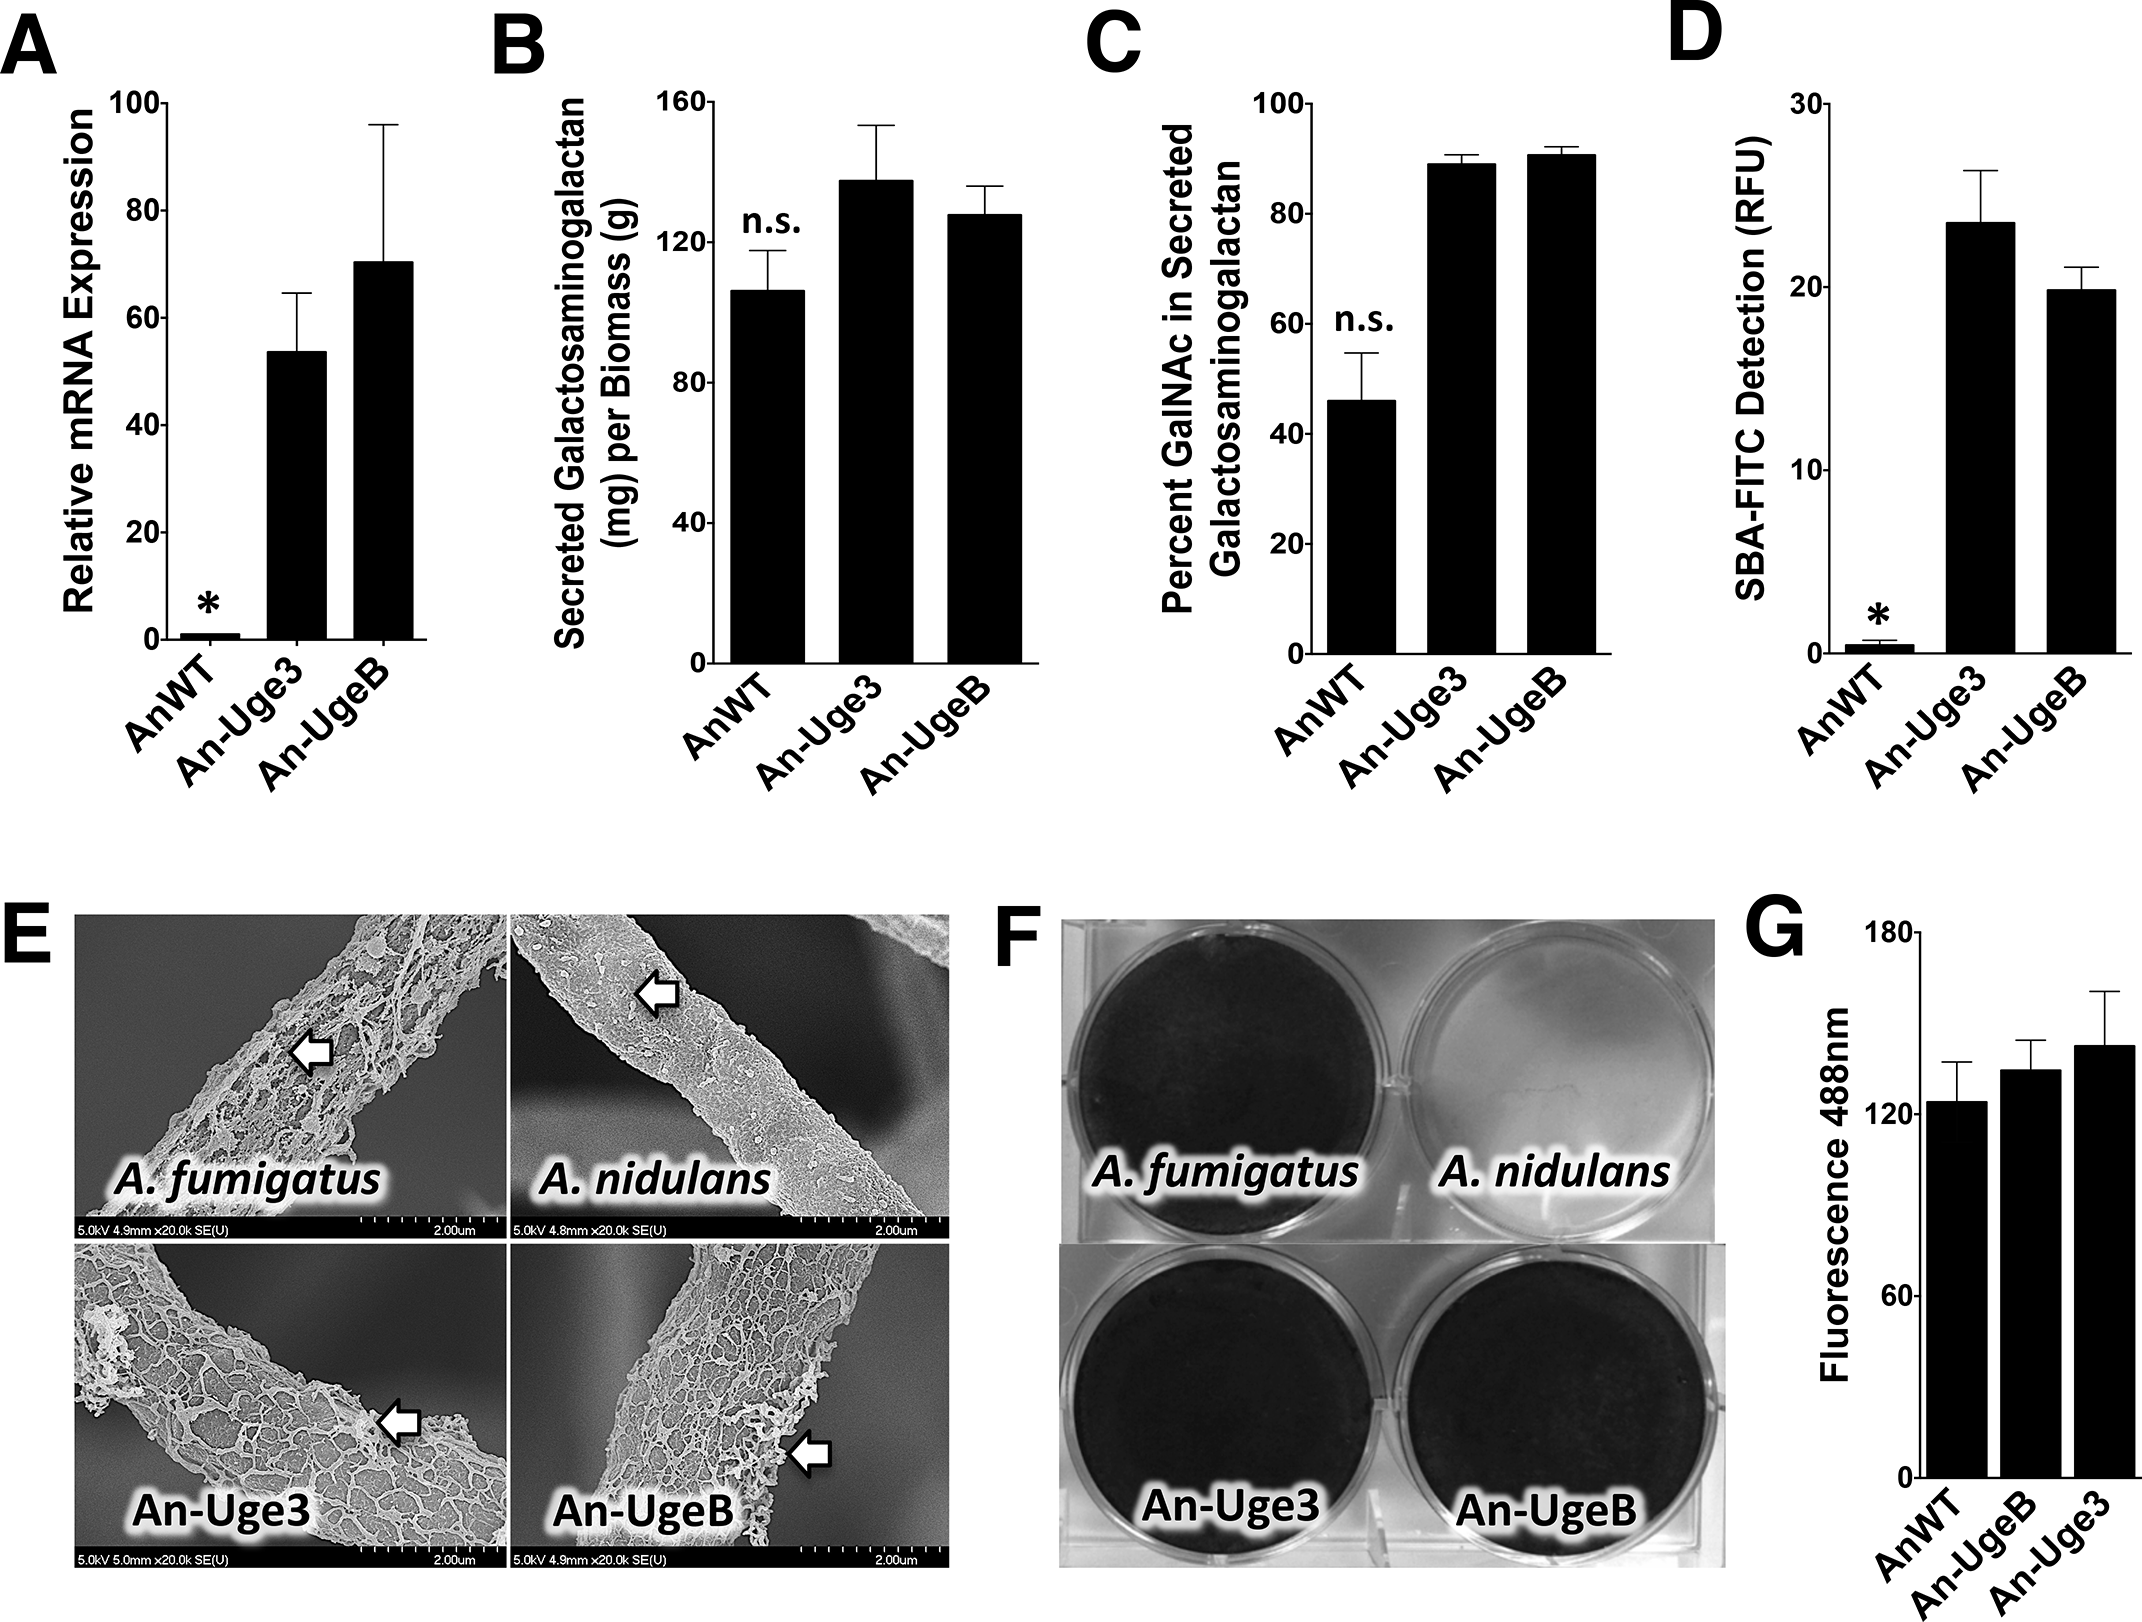 Overexpression of <i>uge3</i> or <i>ugeB</i> in <i>A</i>. <i>nidulans</i> increases the GalNAc content of GAG and enhances the formation of adherent biofilms.